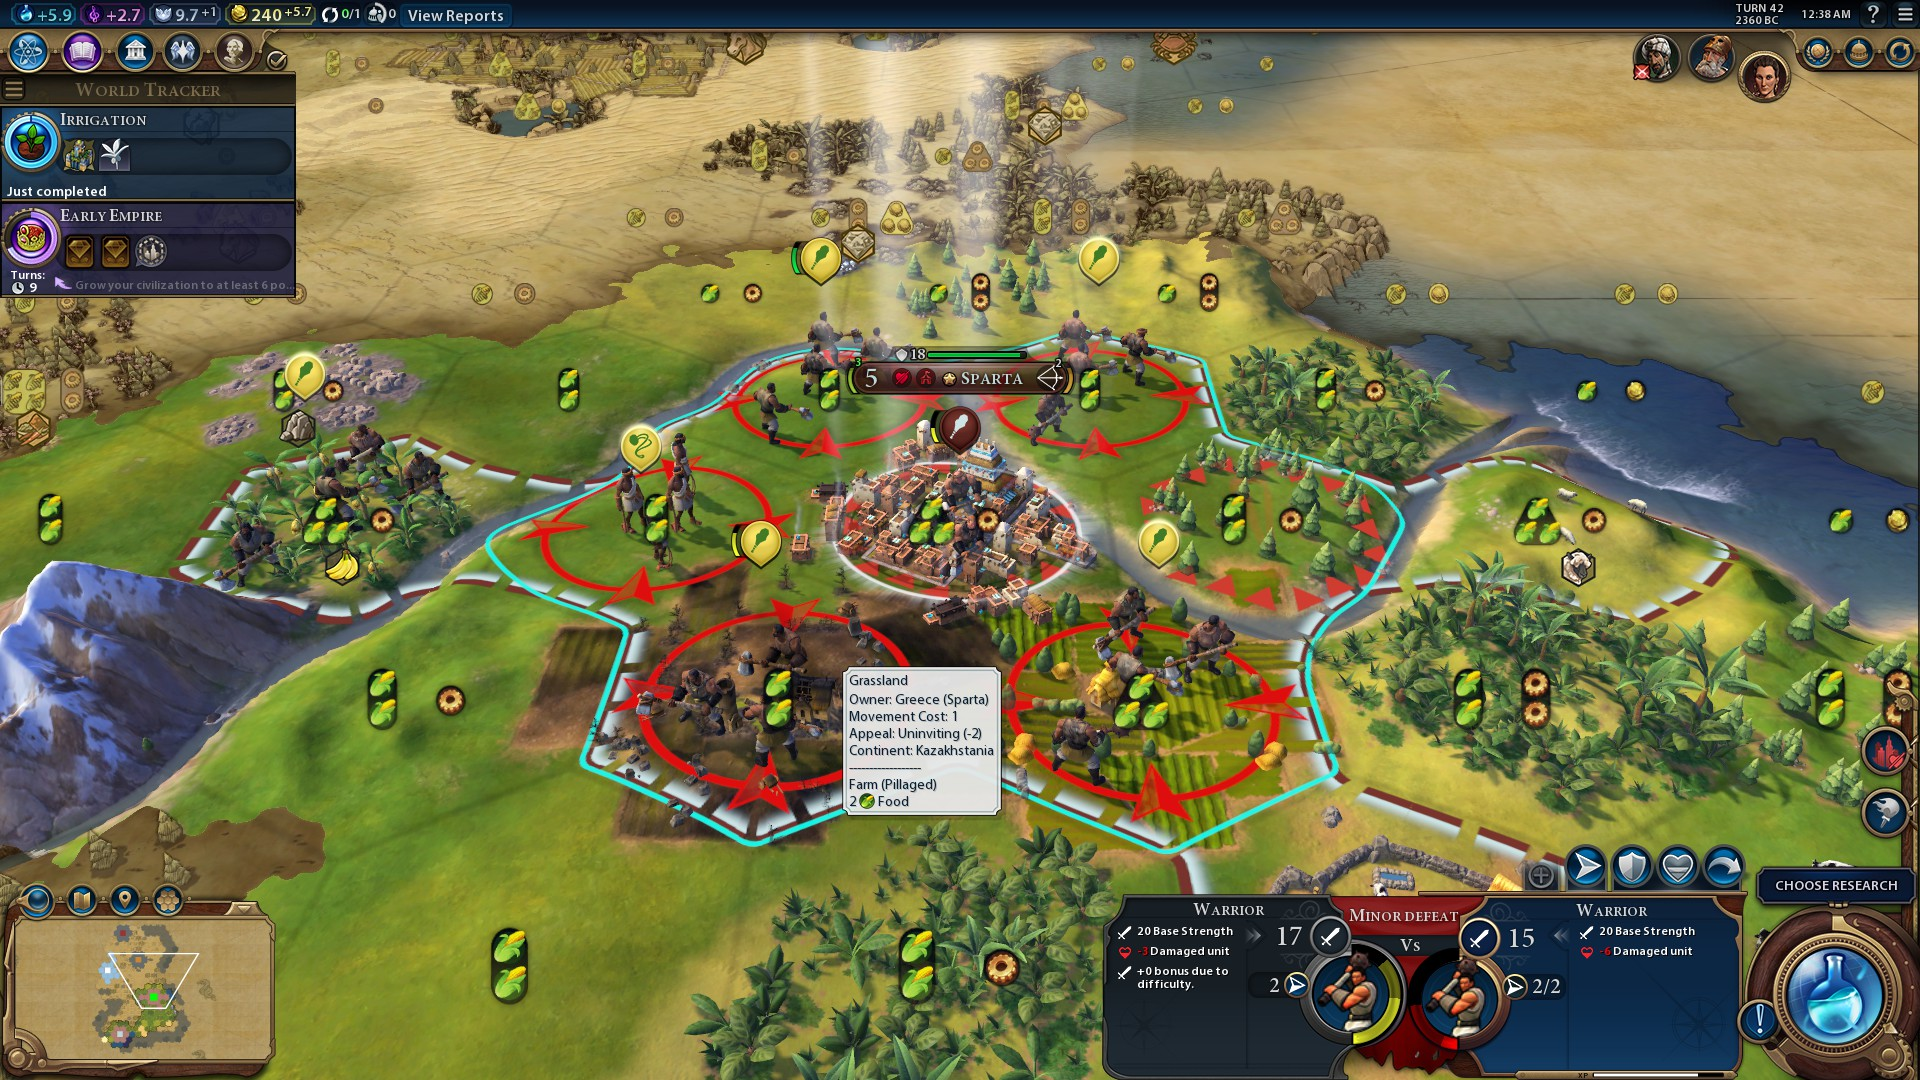 Civilization 6 PC Review: A New Home, Built on Solid Ground